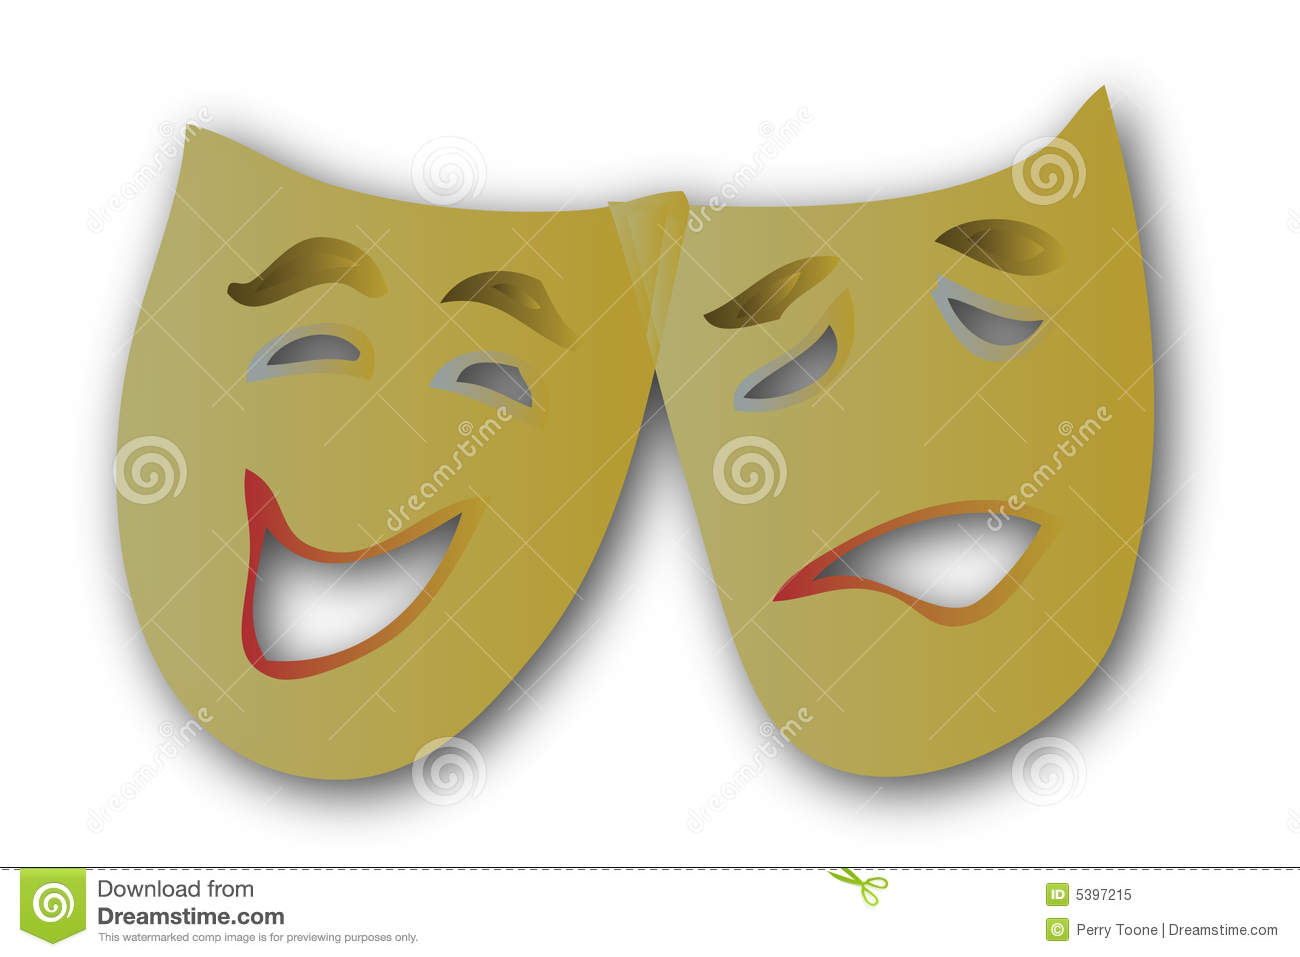 Simple Theatre Masks Theatre masks simple: galleryhip.com/simple-theatre-masks.html